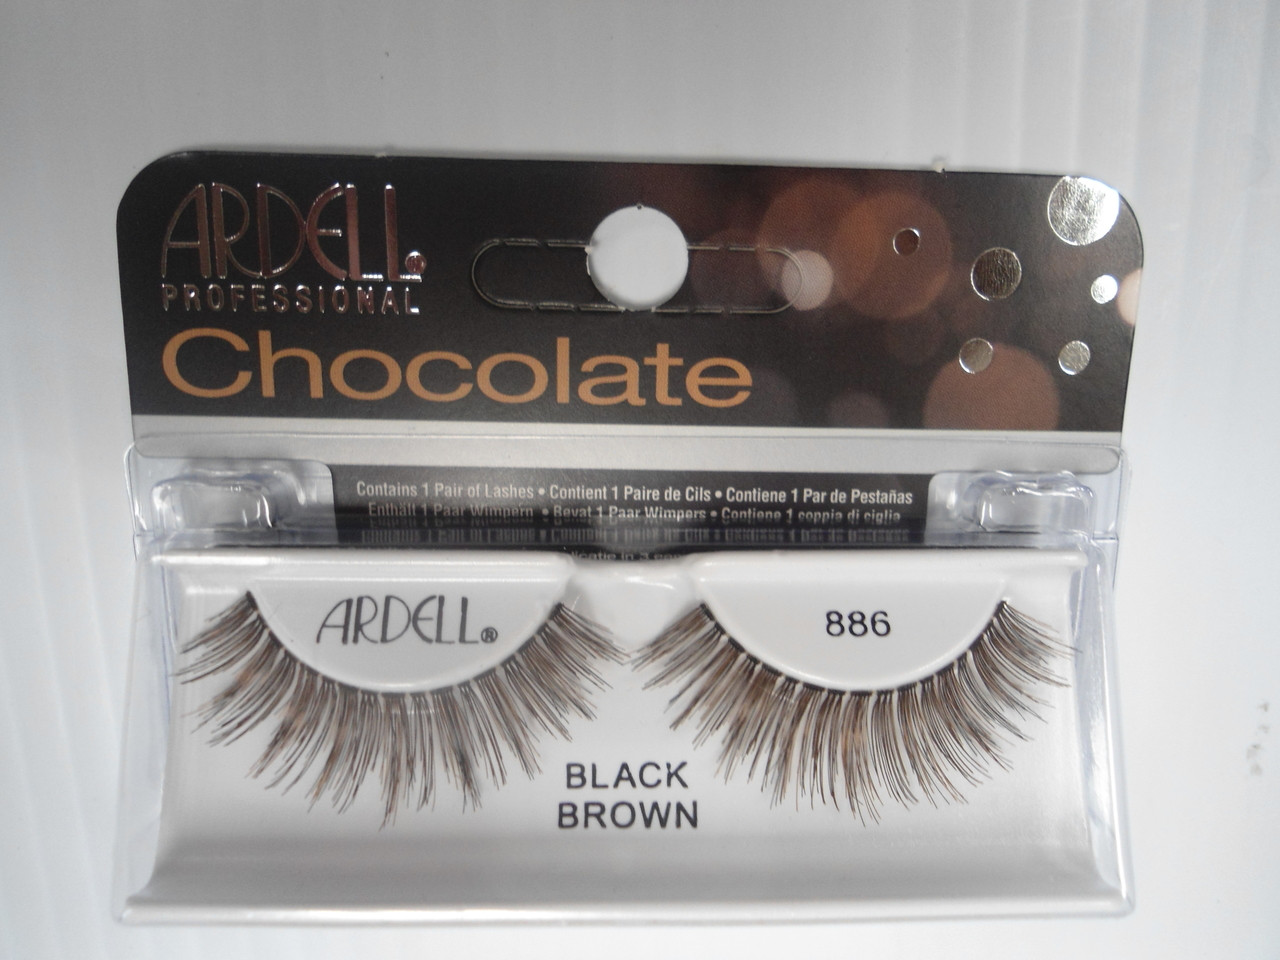 21996cd7422 Ardell Chocolate Strip Lashes 886 Black/Brown (Pack of 4)